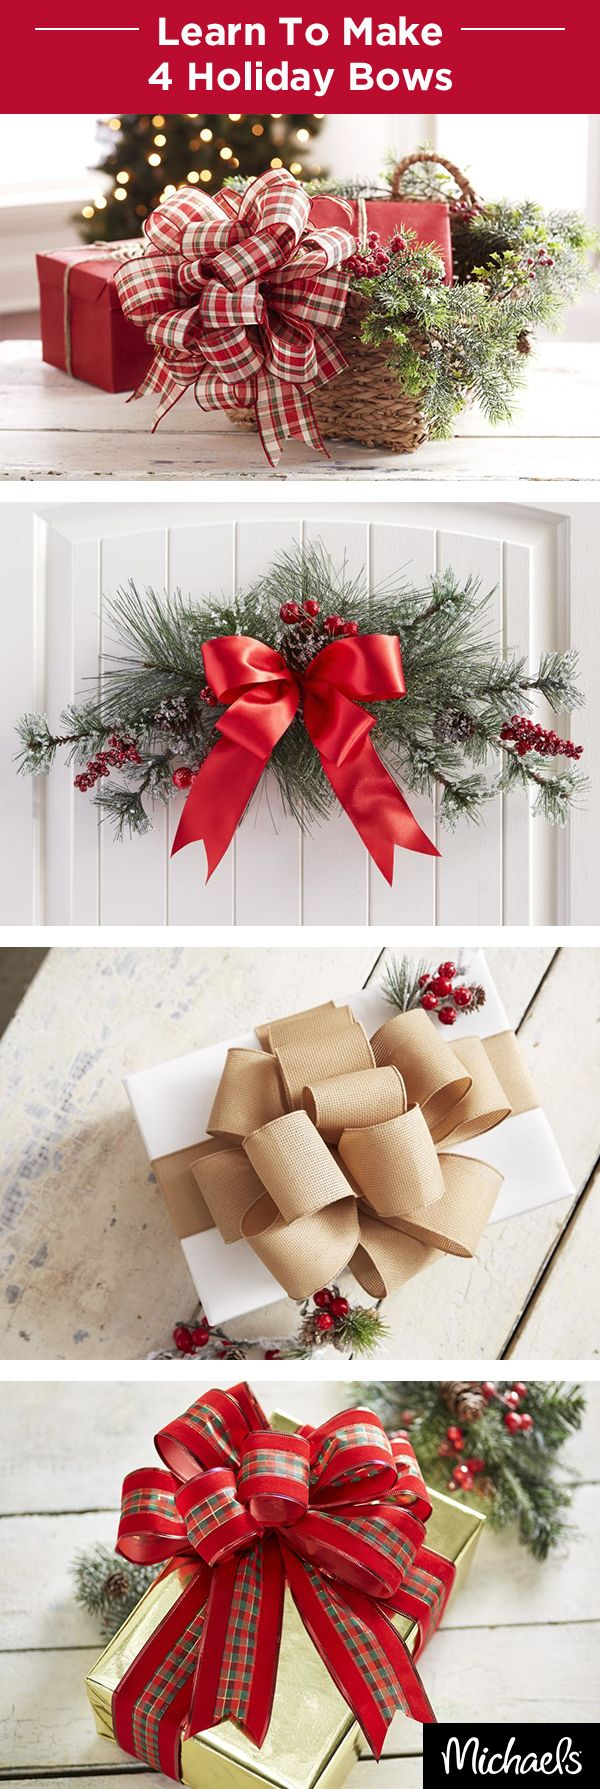 Learn to make holiday bows that make your presents and décor pop! It's so simple and elegant. Excite the gift recipient before they event get to what's inside. Get the instructions and supplies on Michaels.com